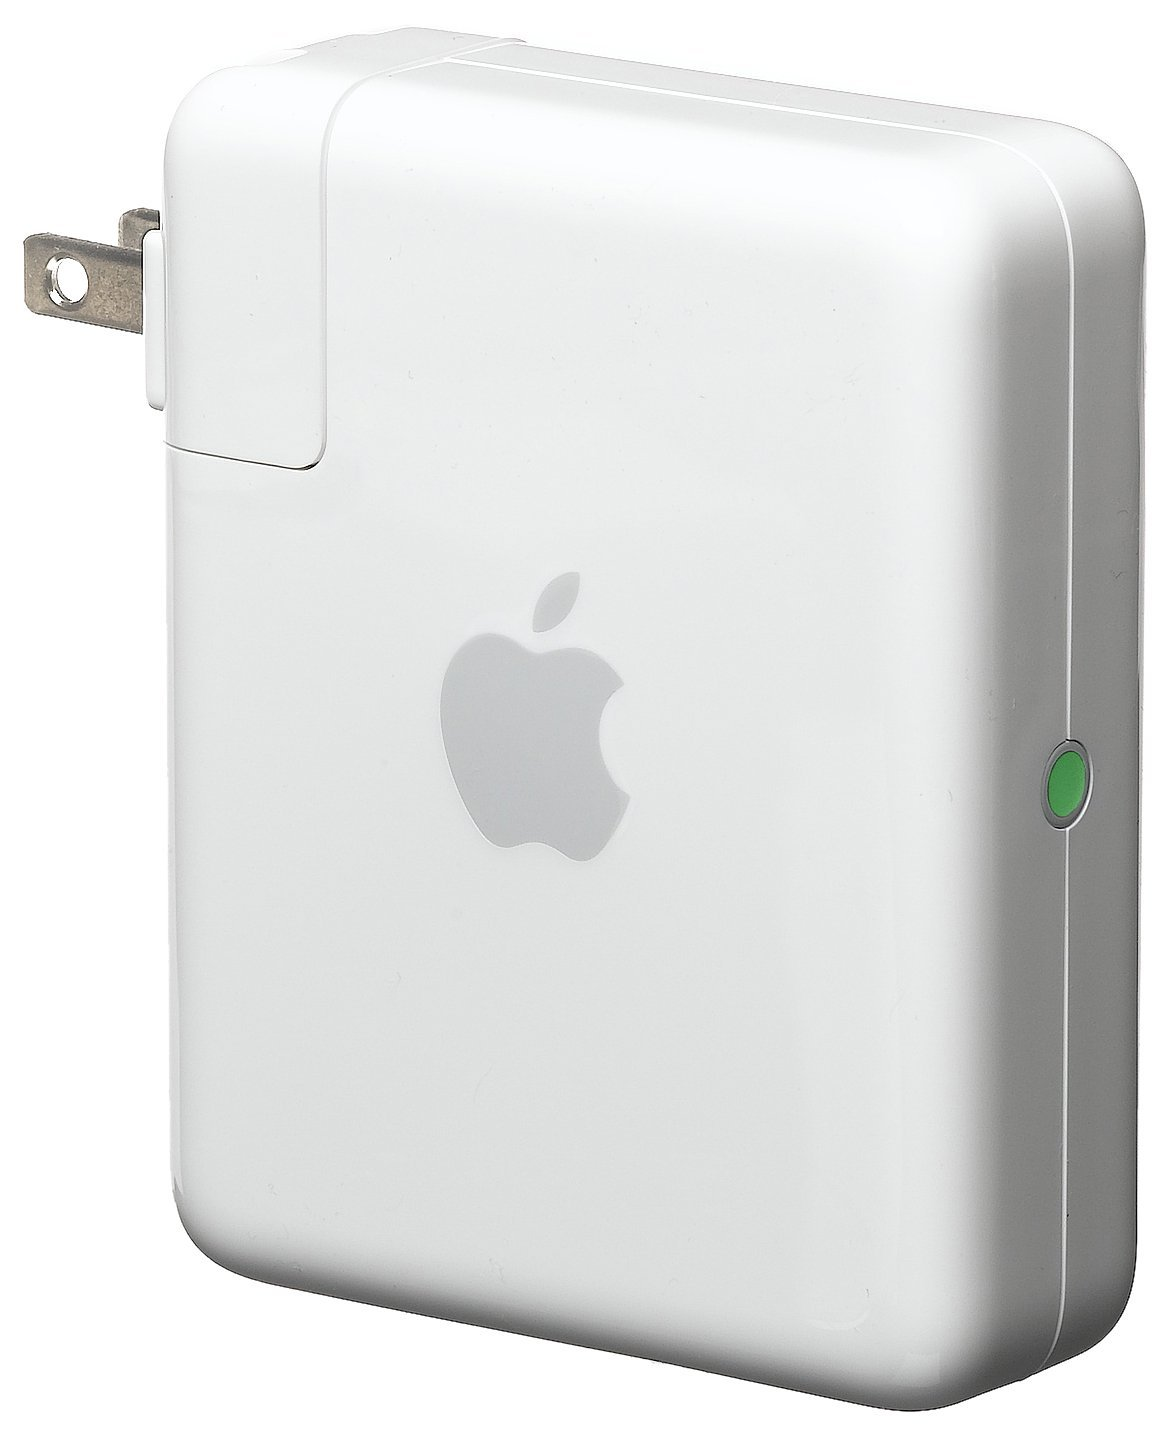 apple airplay multi room setup 6 zones airport express. Black Bedroom Furniture Sets. Home Design Ideas